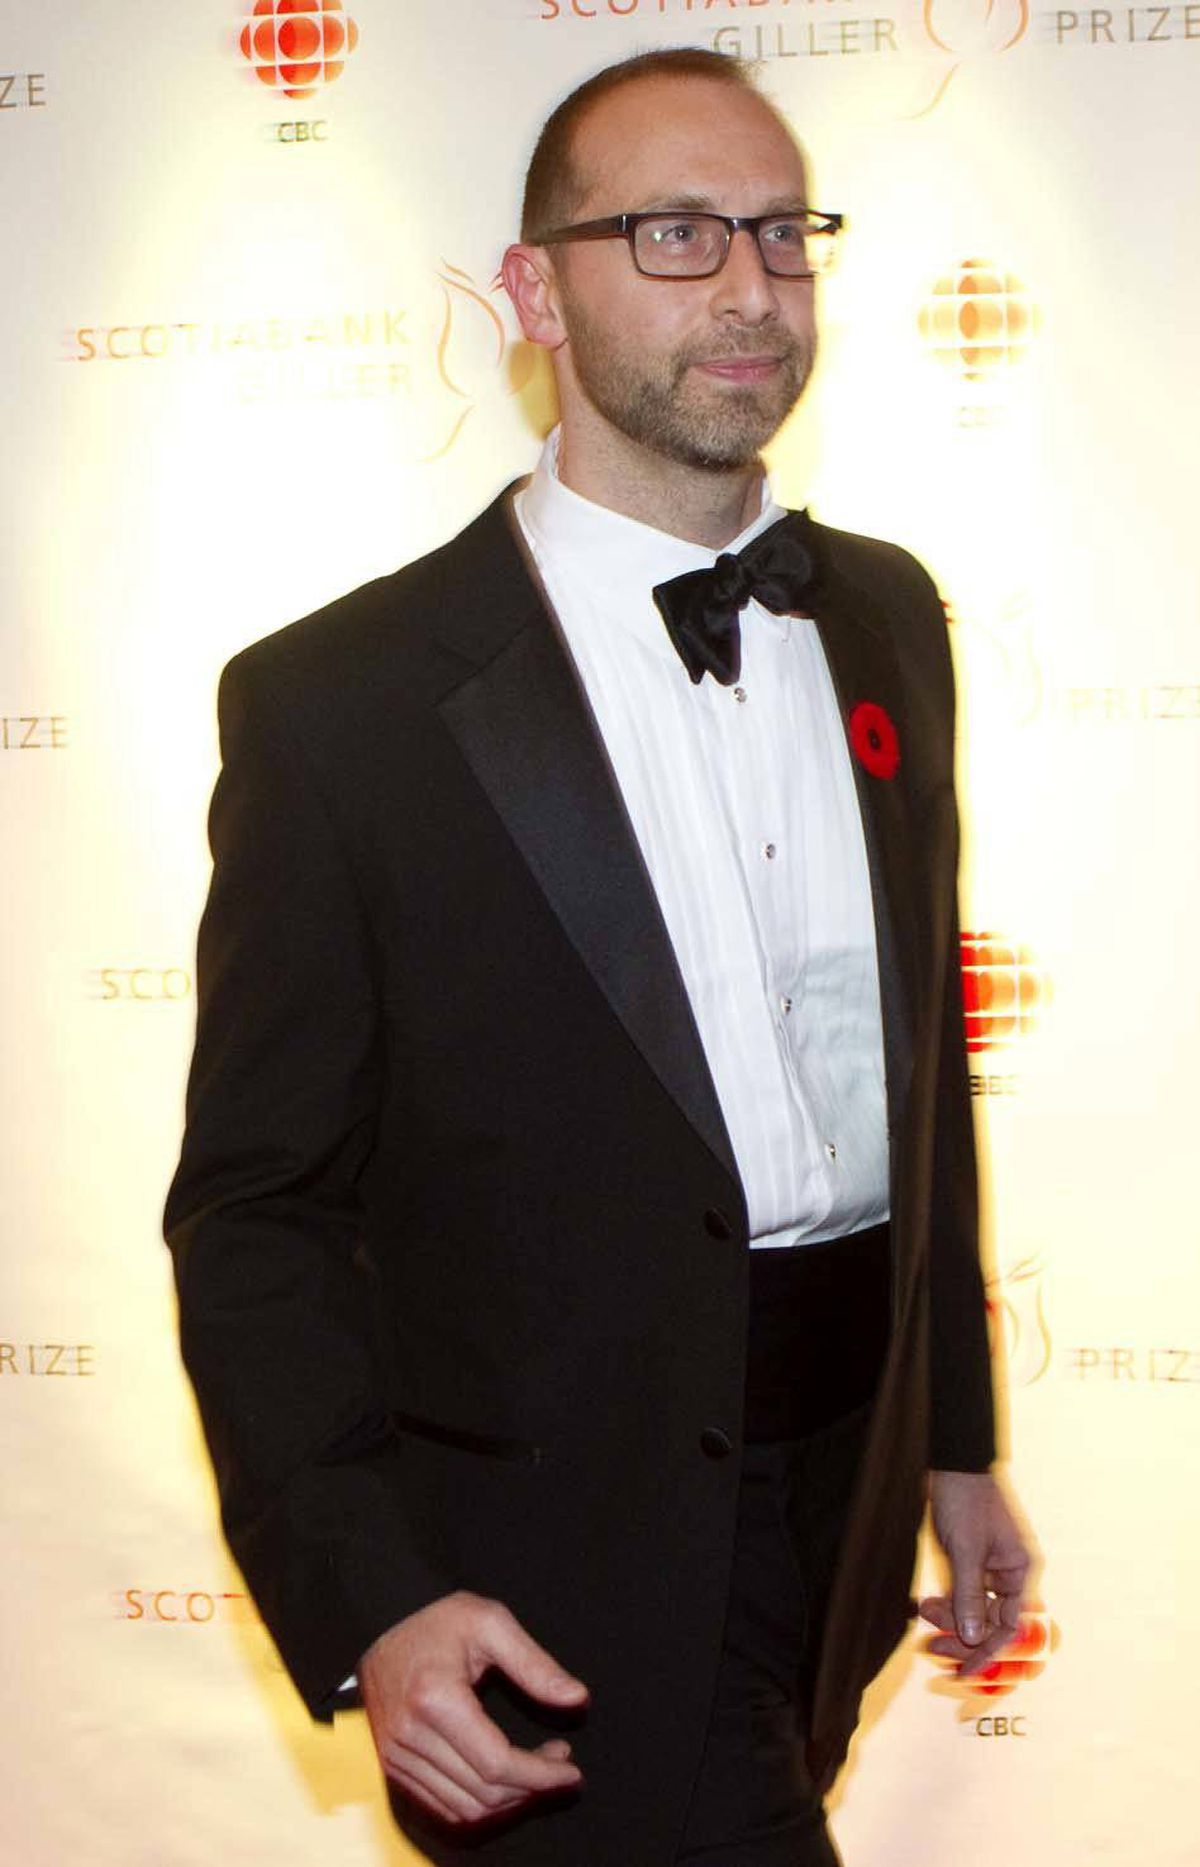 """David Bezmozgis, seen here on the red carpet at the Giller gala, was nominated for his novel """"The Free World""""."""